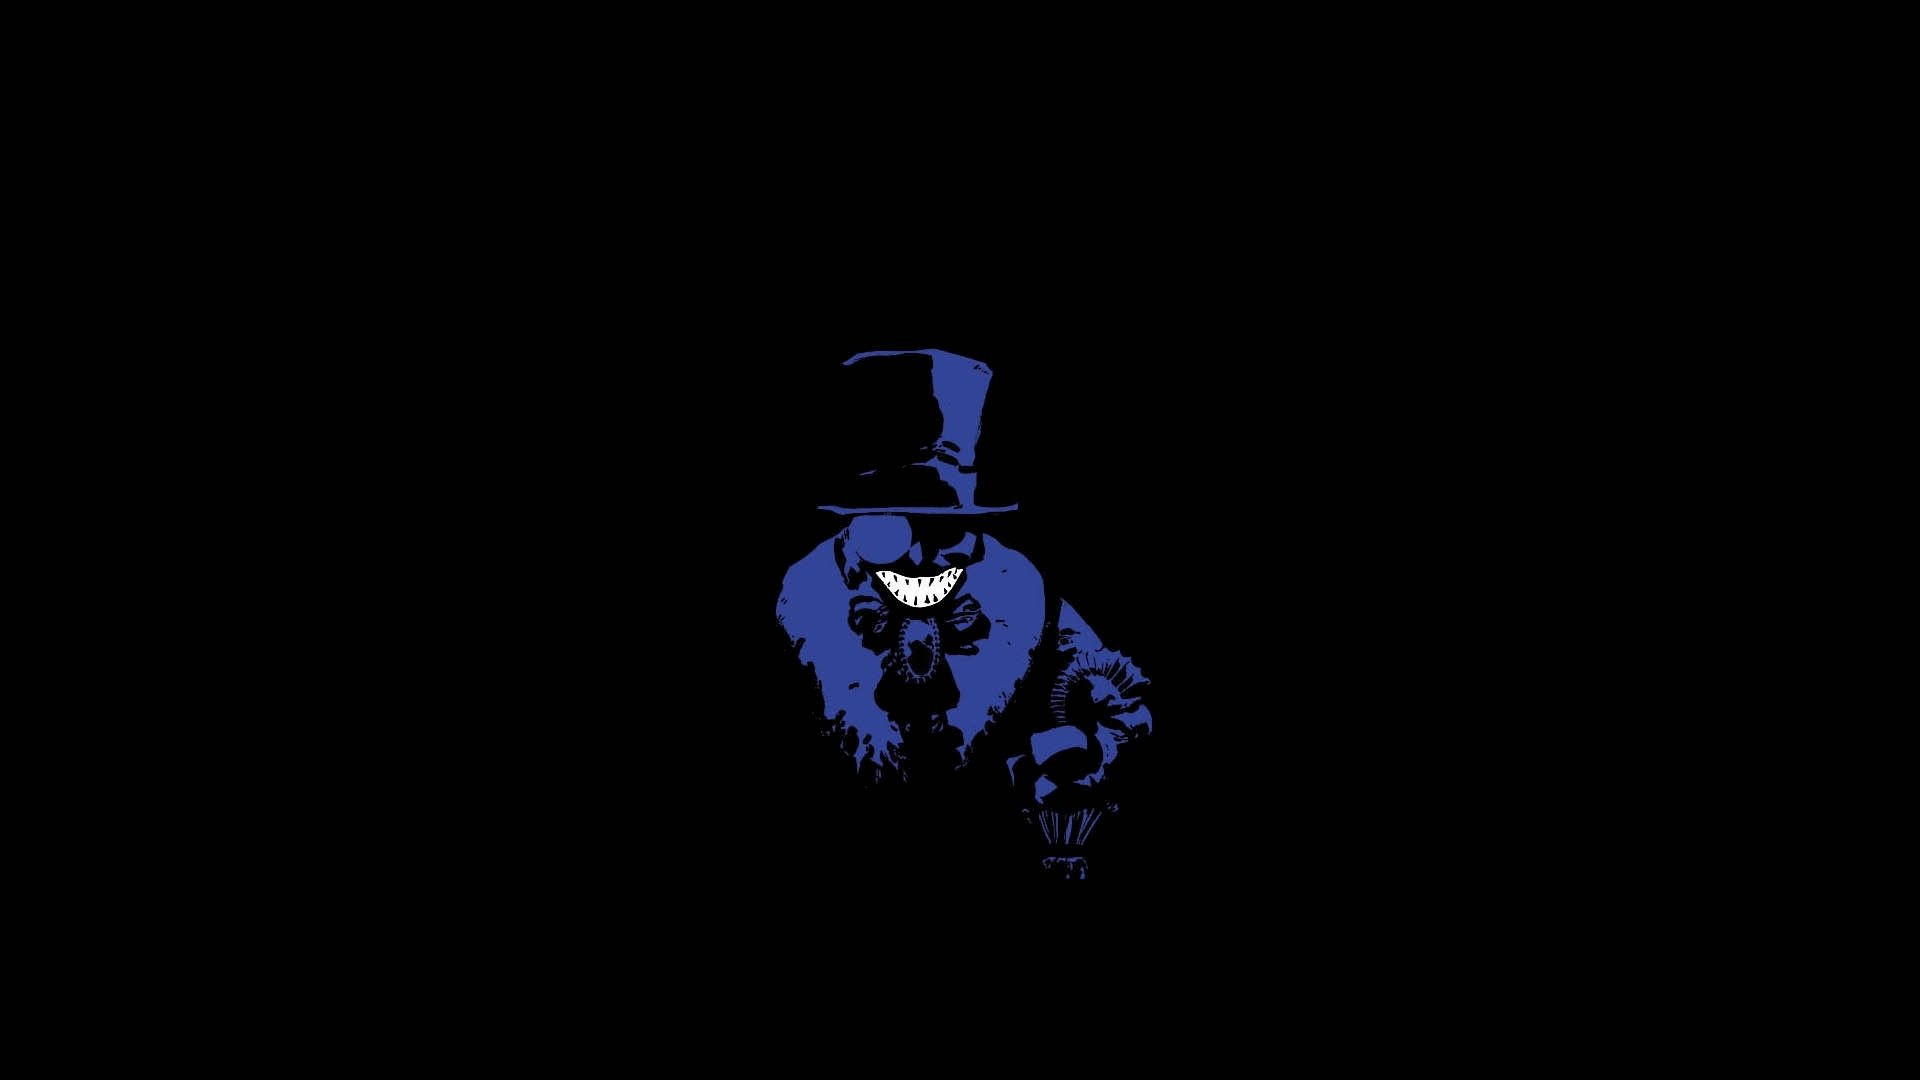 55 Penguin DC Comics HD Wallpapers Background Images 1920x1080